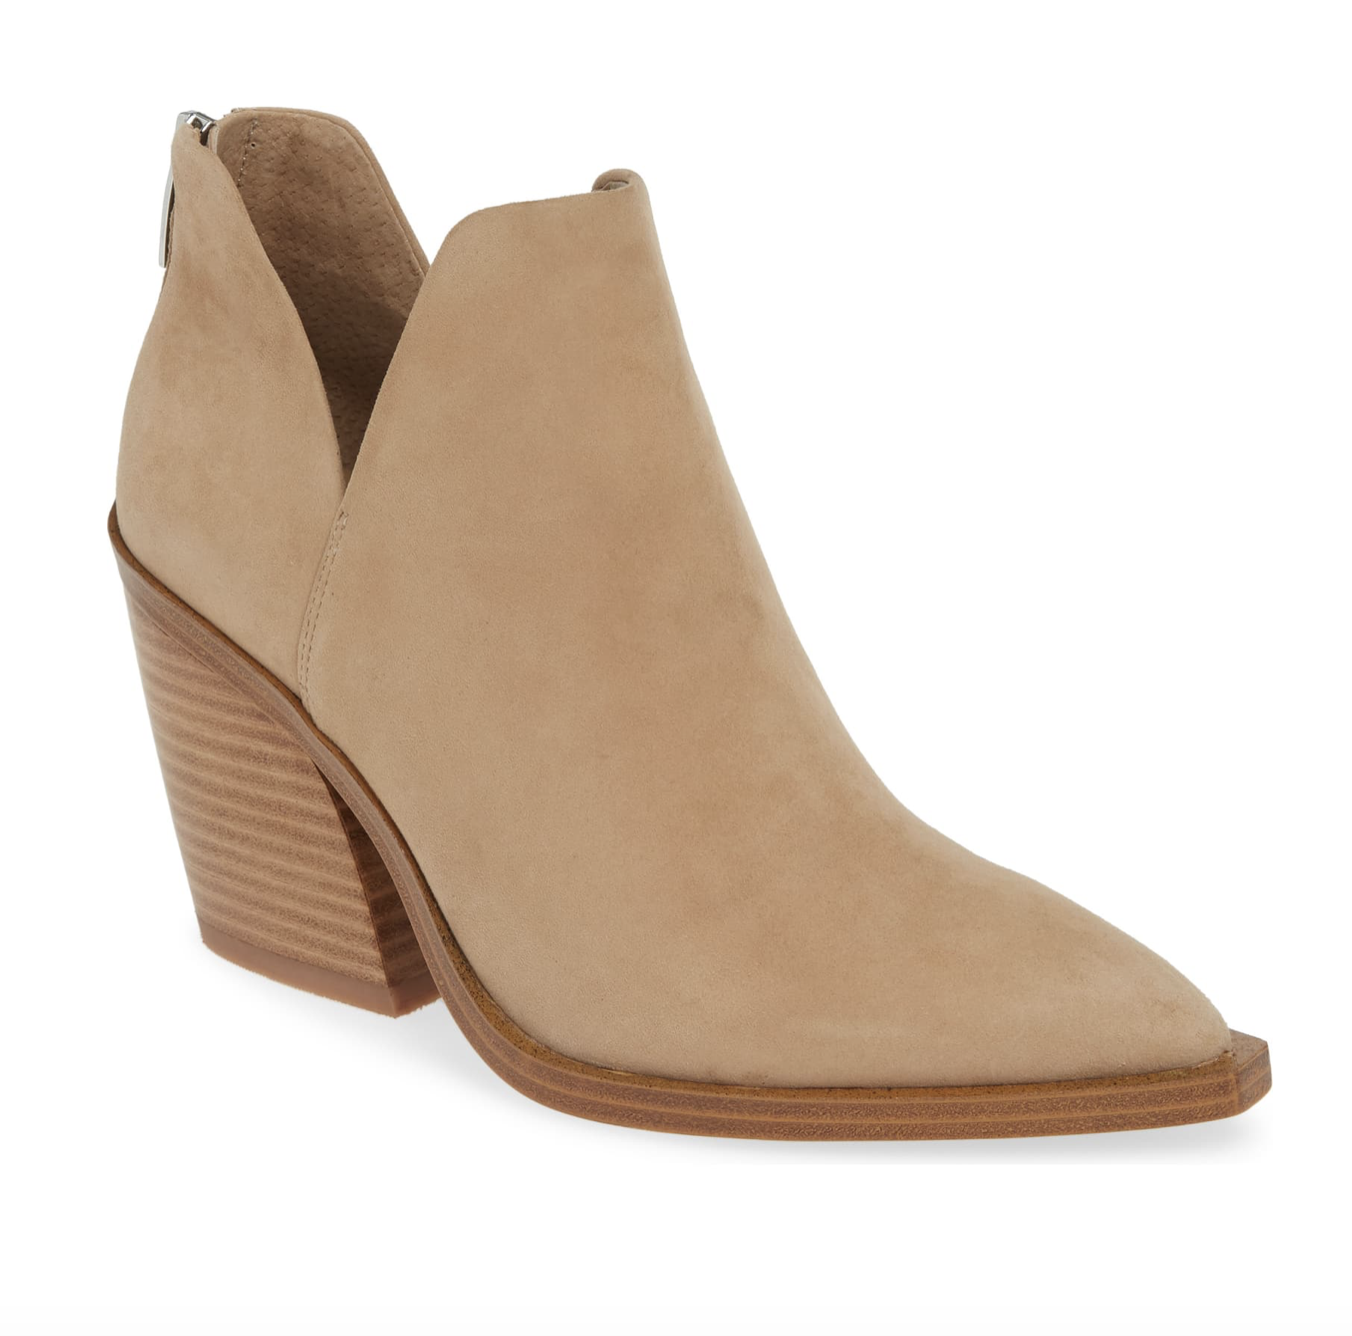 Tan Booties | Nordstrom Anniversary Sale 2019 | A Demure Life Fashion Blog